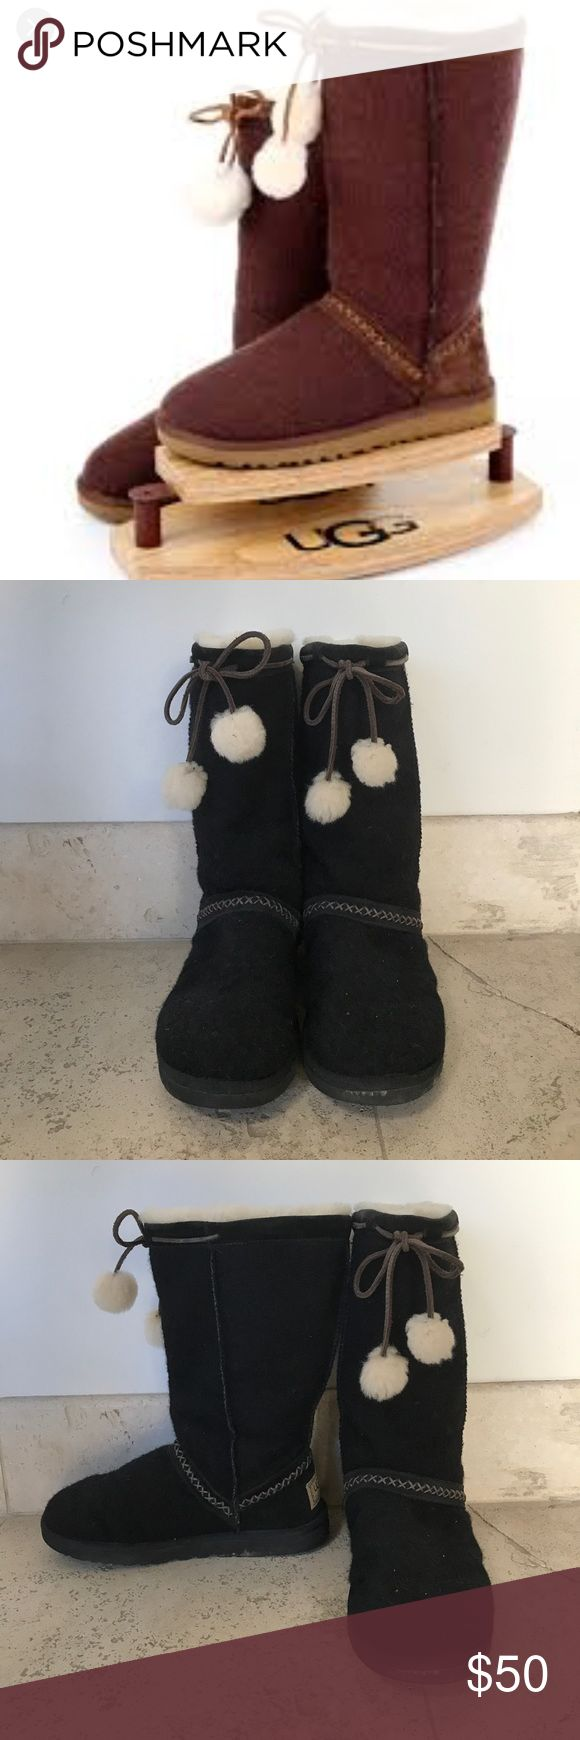 UGG boot with pom pom selling black pair- brown picture is to show style! fur inside, wool outside with fur pom poms (sheepskin lining), real uggs! Can ship today! UGG Shoes Winter & Rain Boots